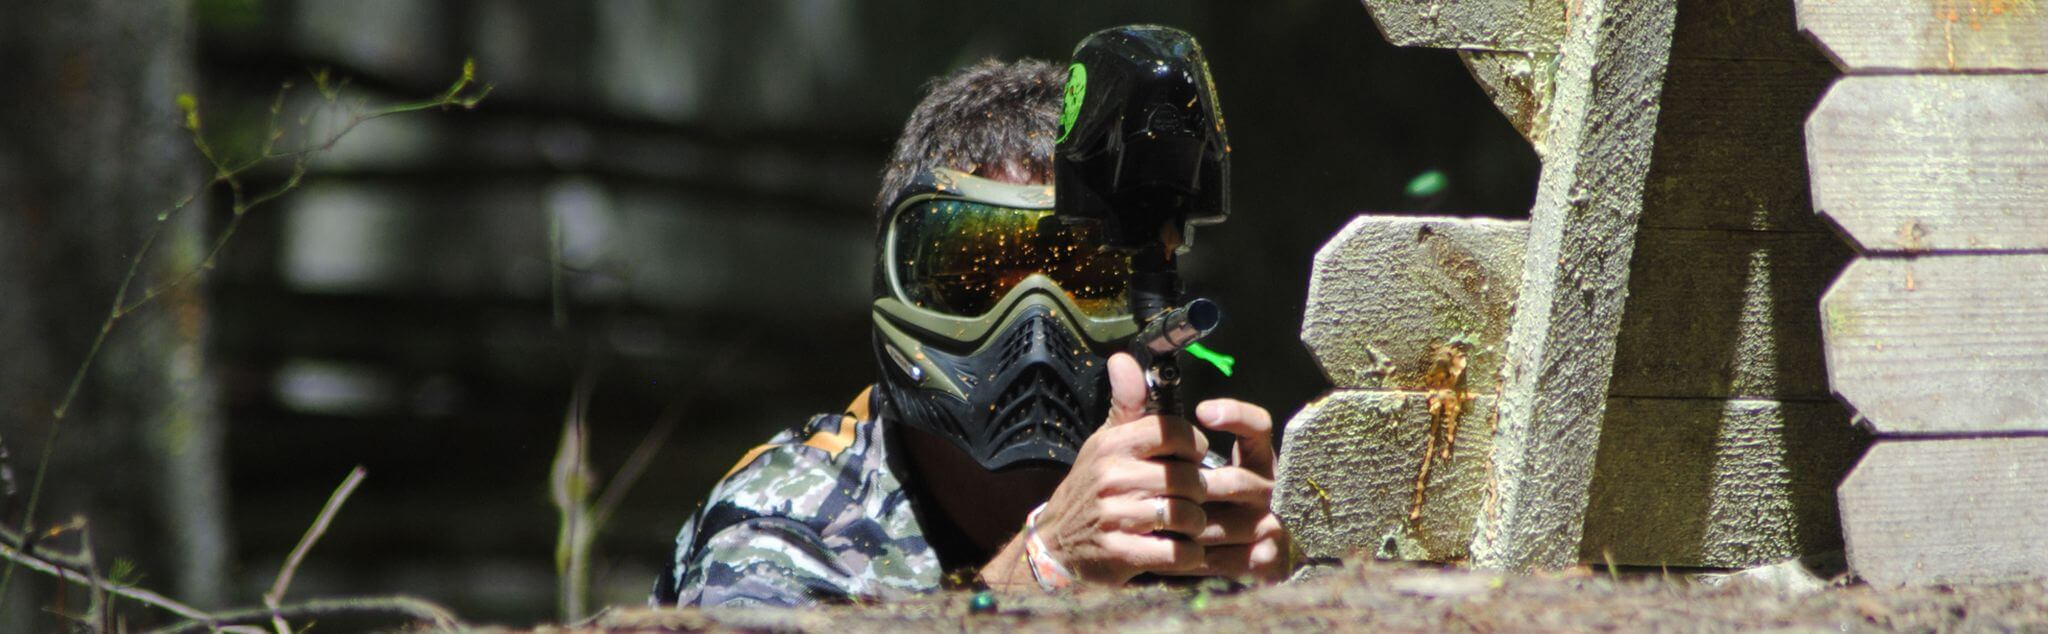 Paintball en Villar De Domingo Garcia